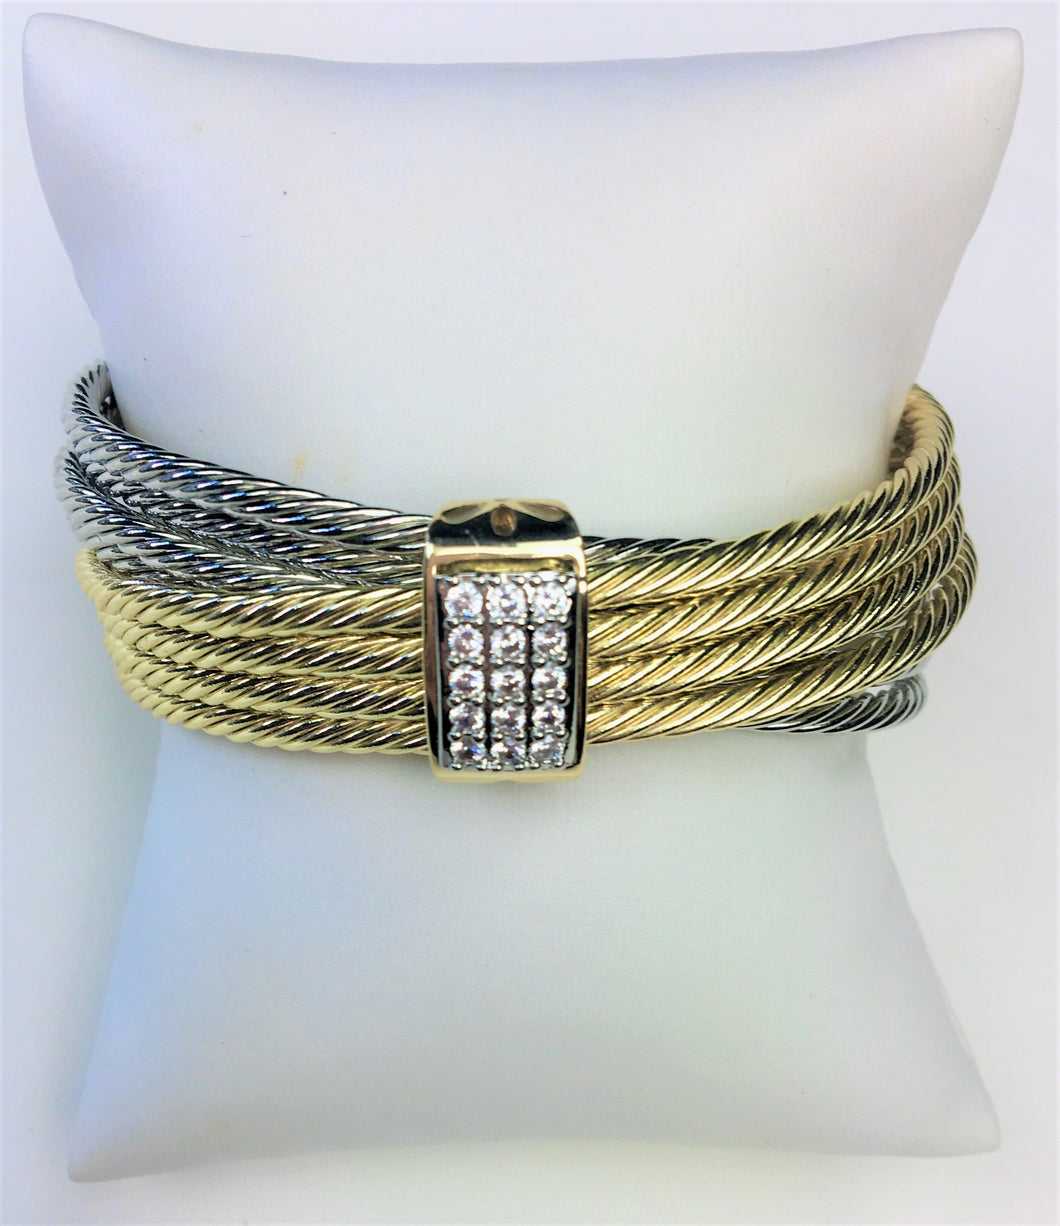 Yurman-Inspired Two-Tone Bangle Bracelet